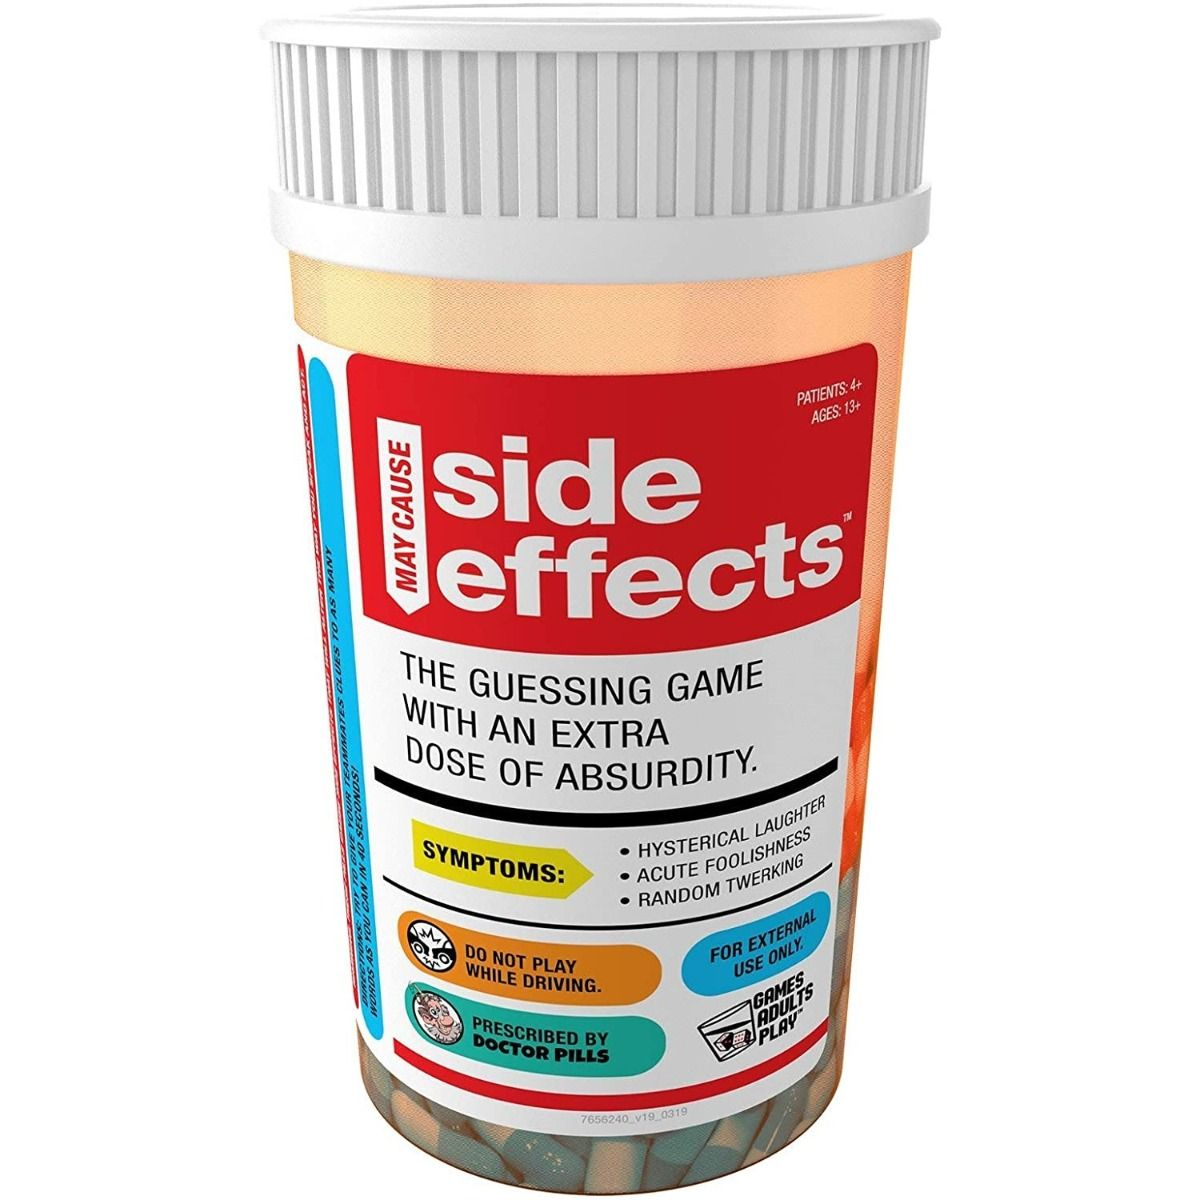 May Cause Side Effects